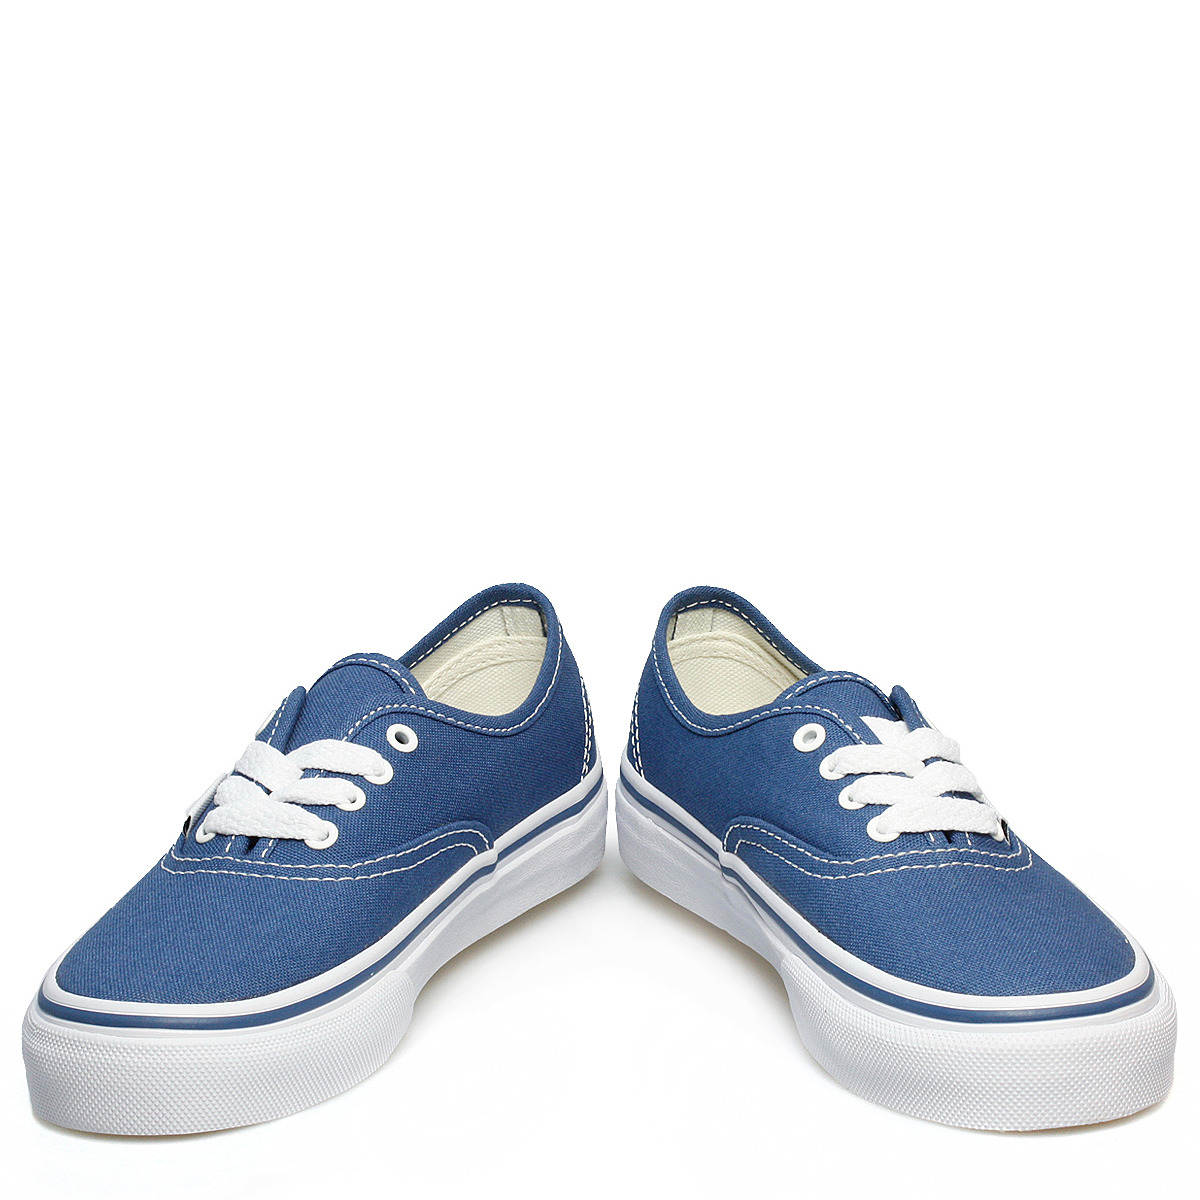 Vans Kids Trainers Red/Blue Girls Boys Canvas Trainers ...